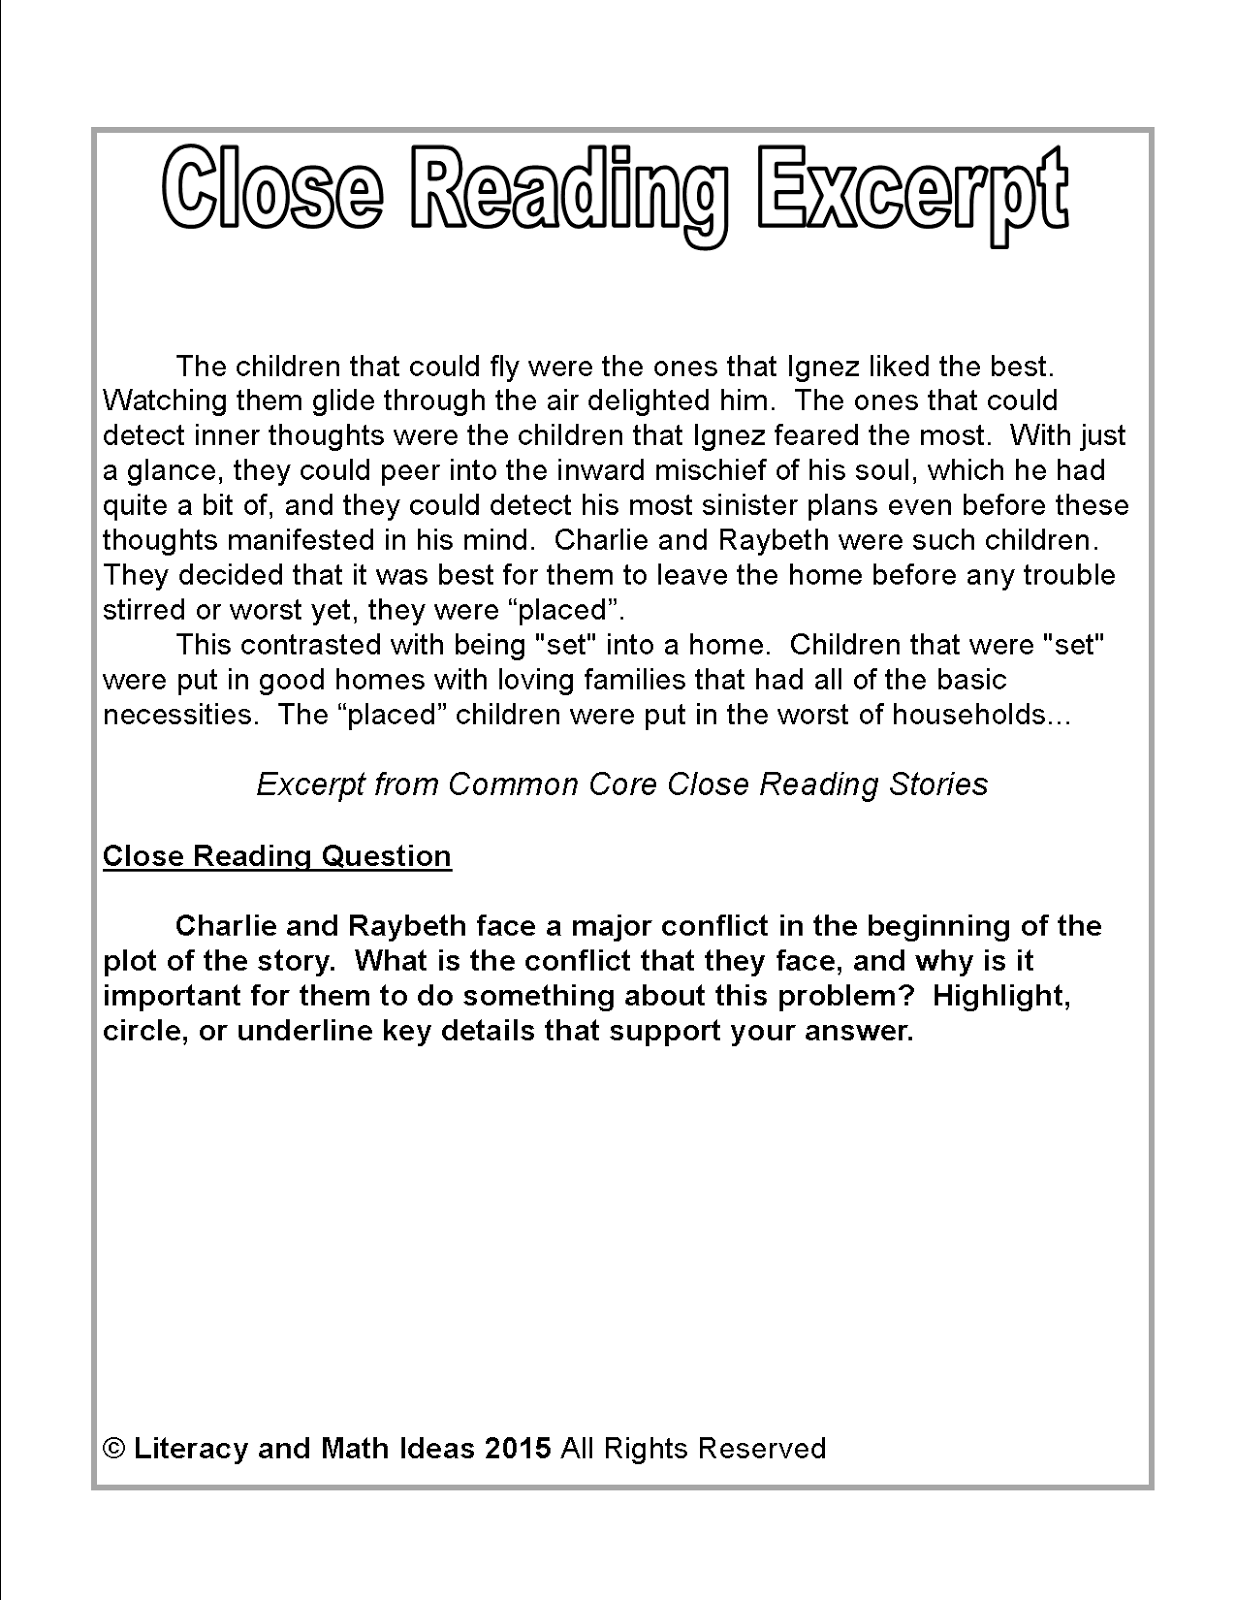 Worksheet Reading Stories For 4th Graders literacy math ideas free close reading passage of the week click here to access common core stories